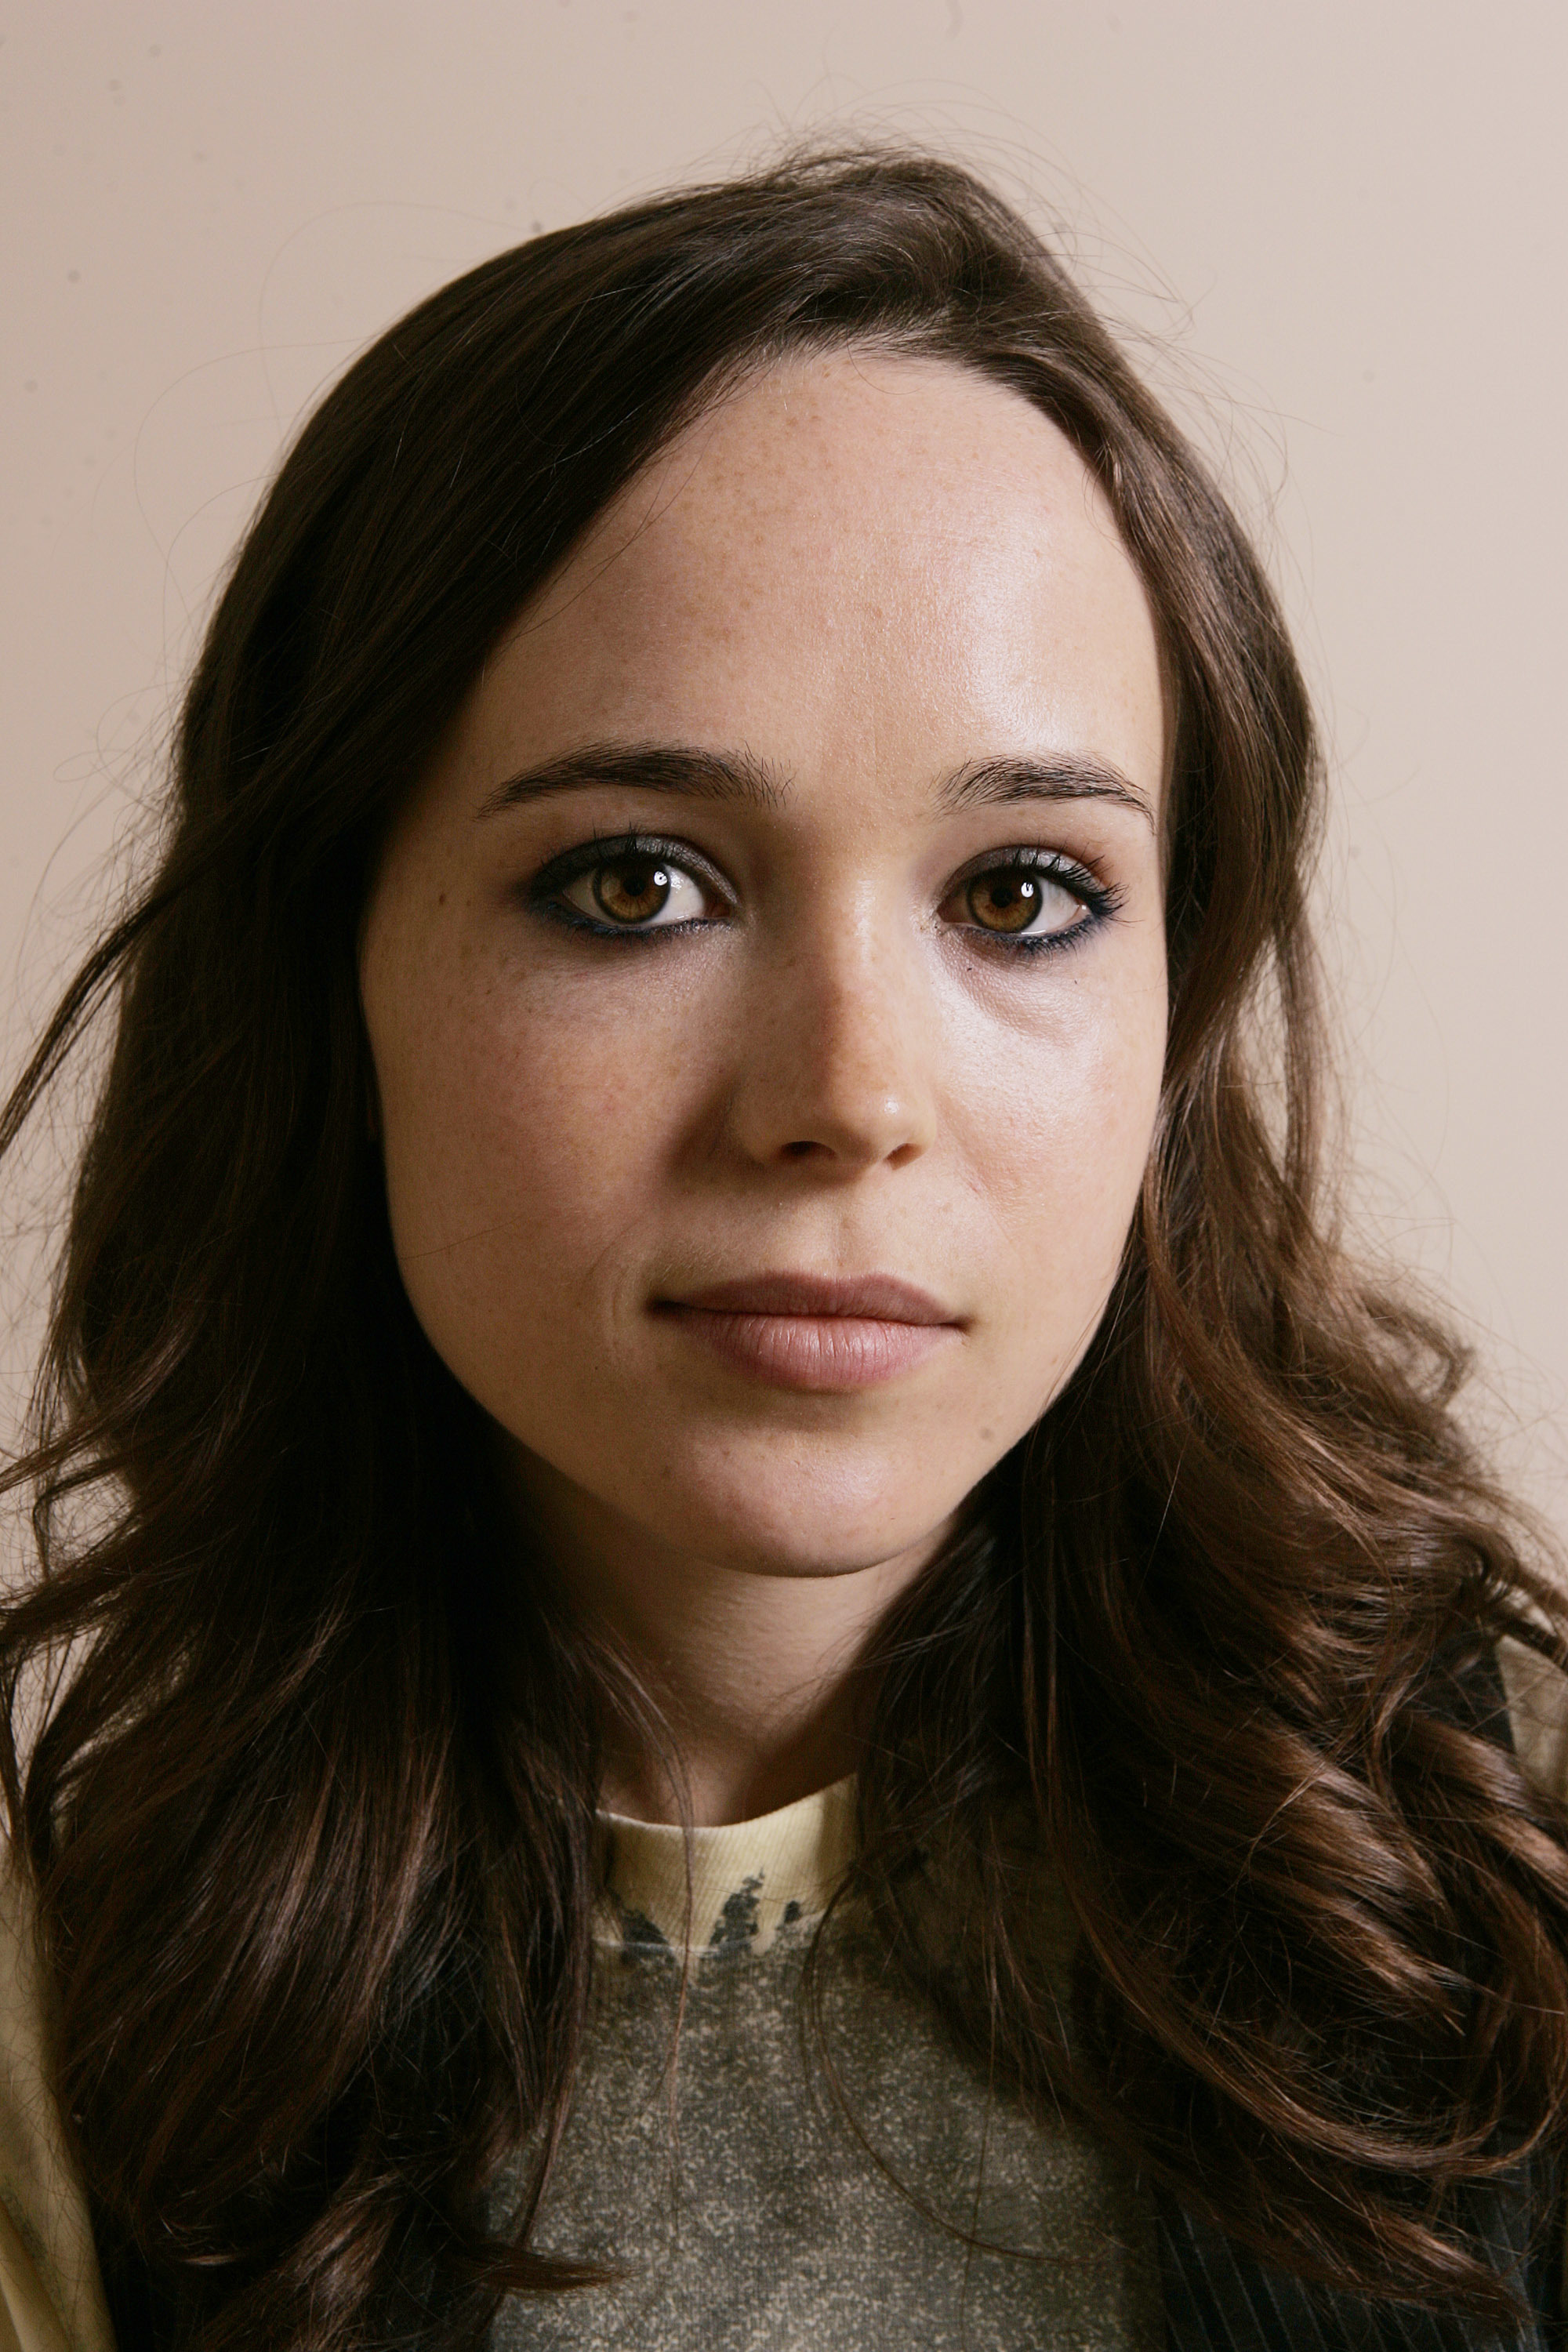 brunettes ellen page Actress HD Wallpaper